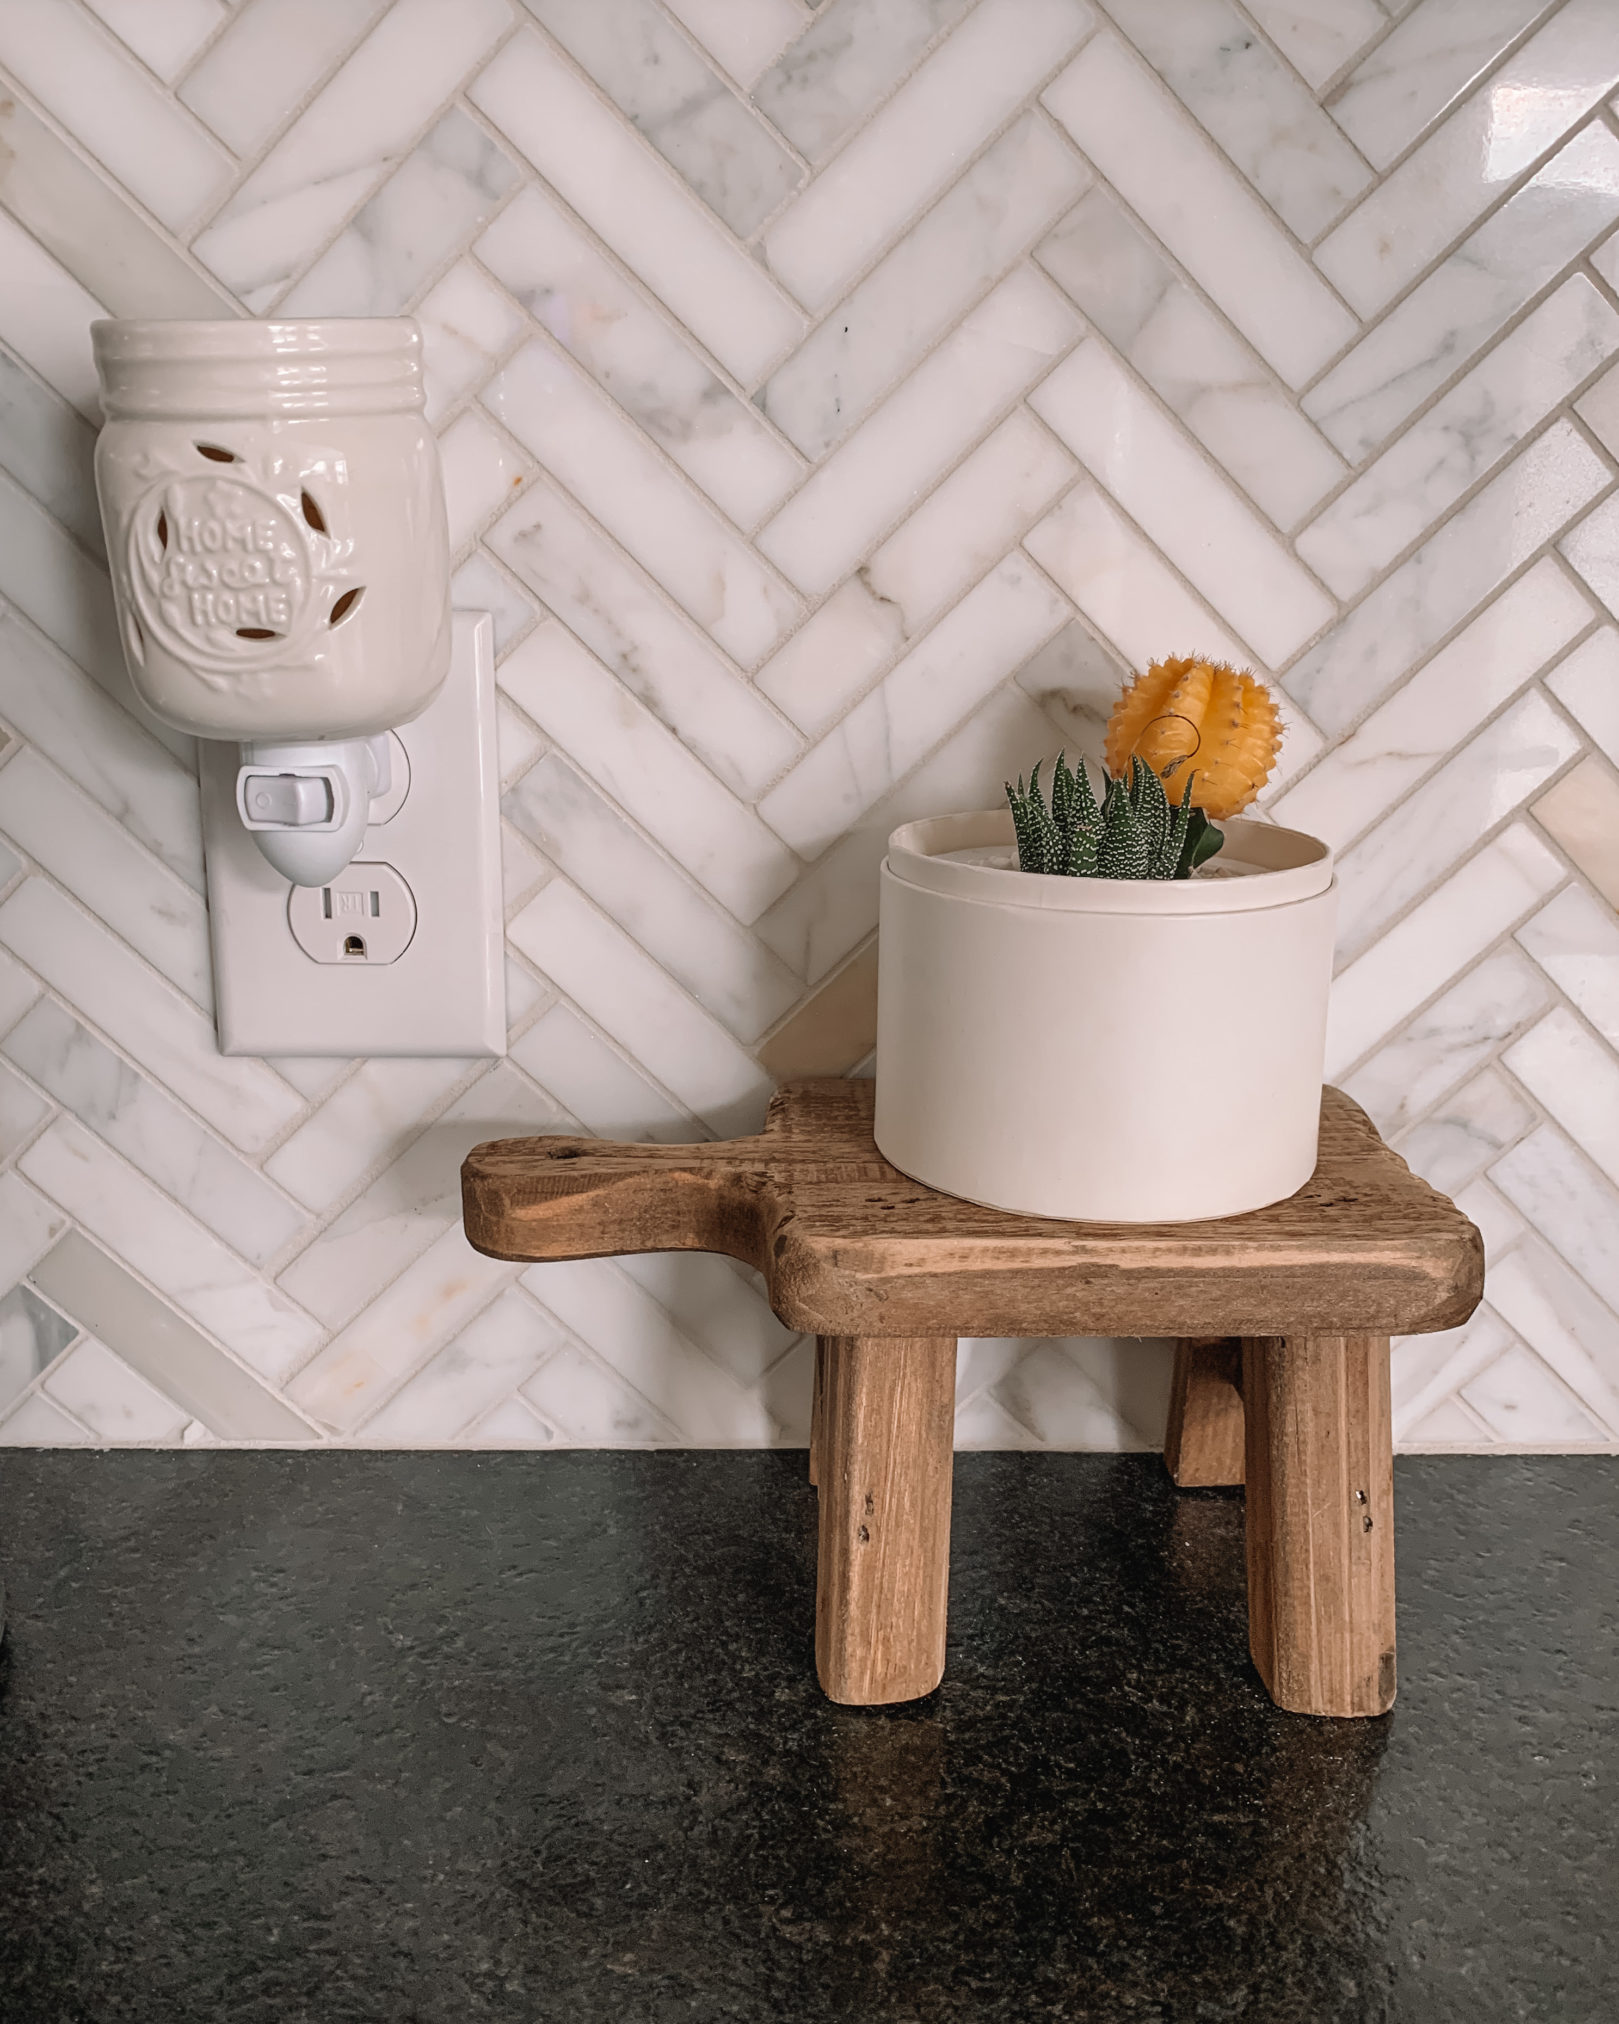 amazon finds, amazon home, home decor, wood pedestal, soap holder, mini plant stand, wax melt plugin